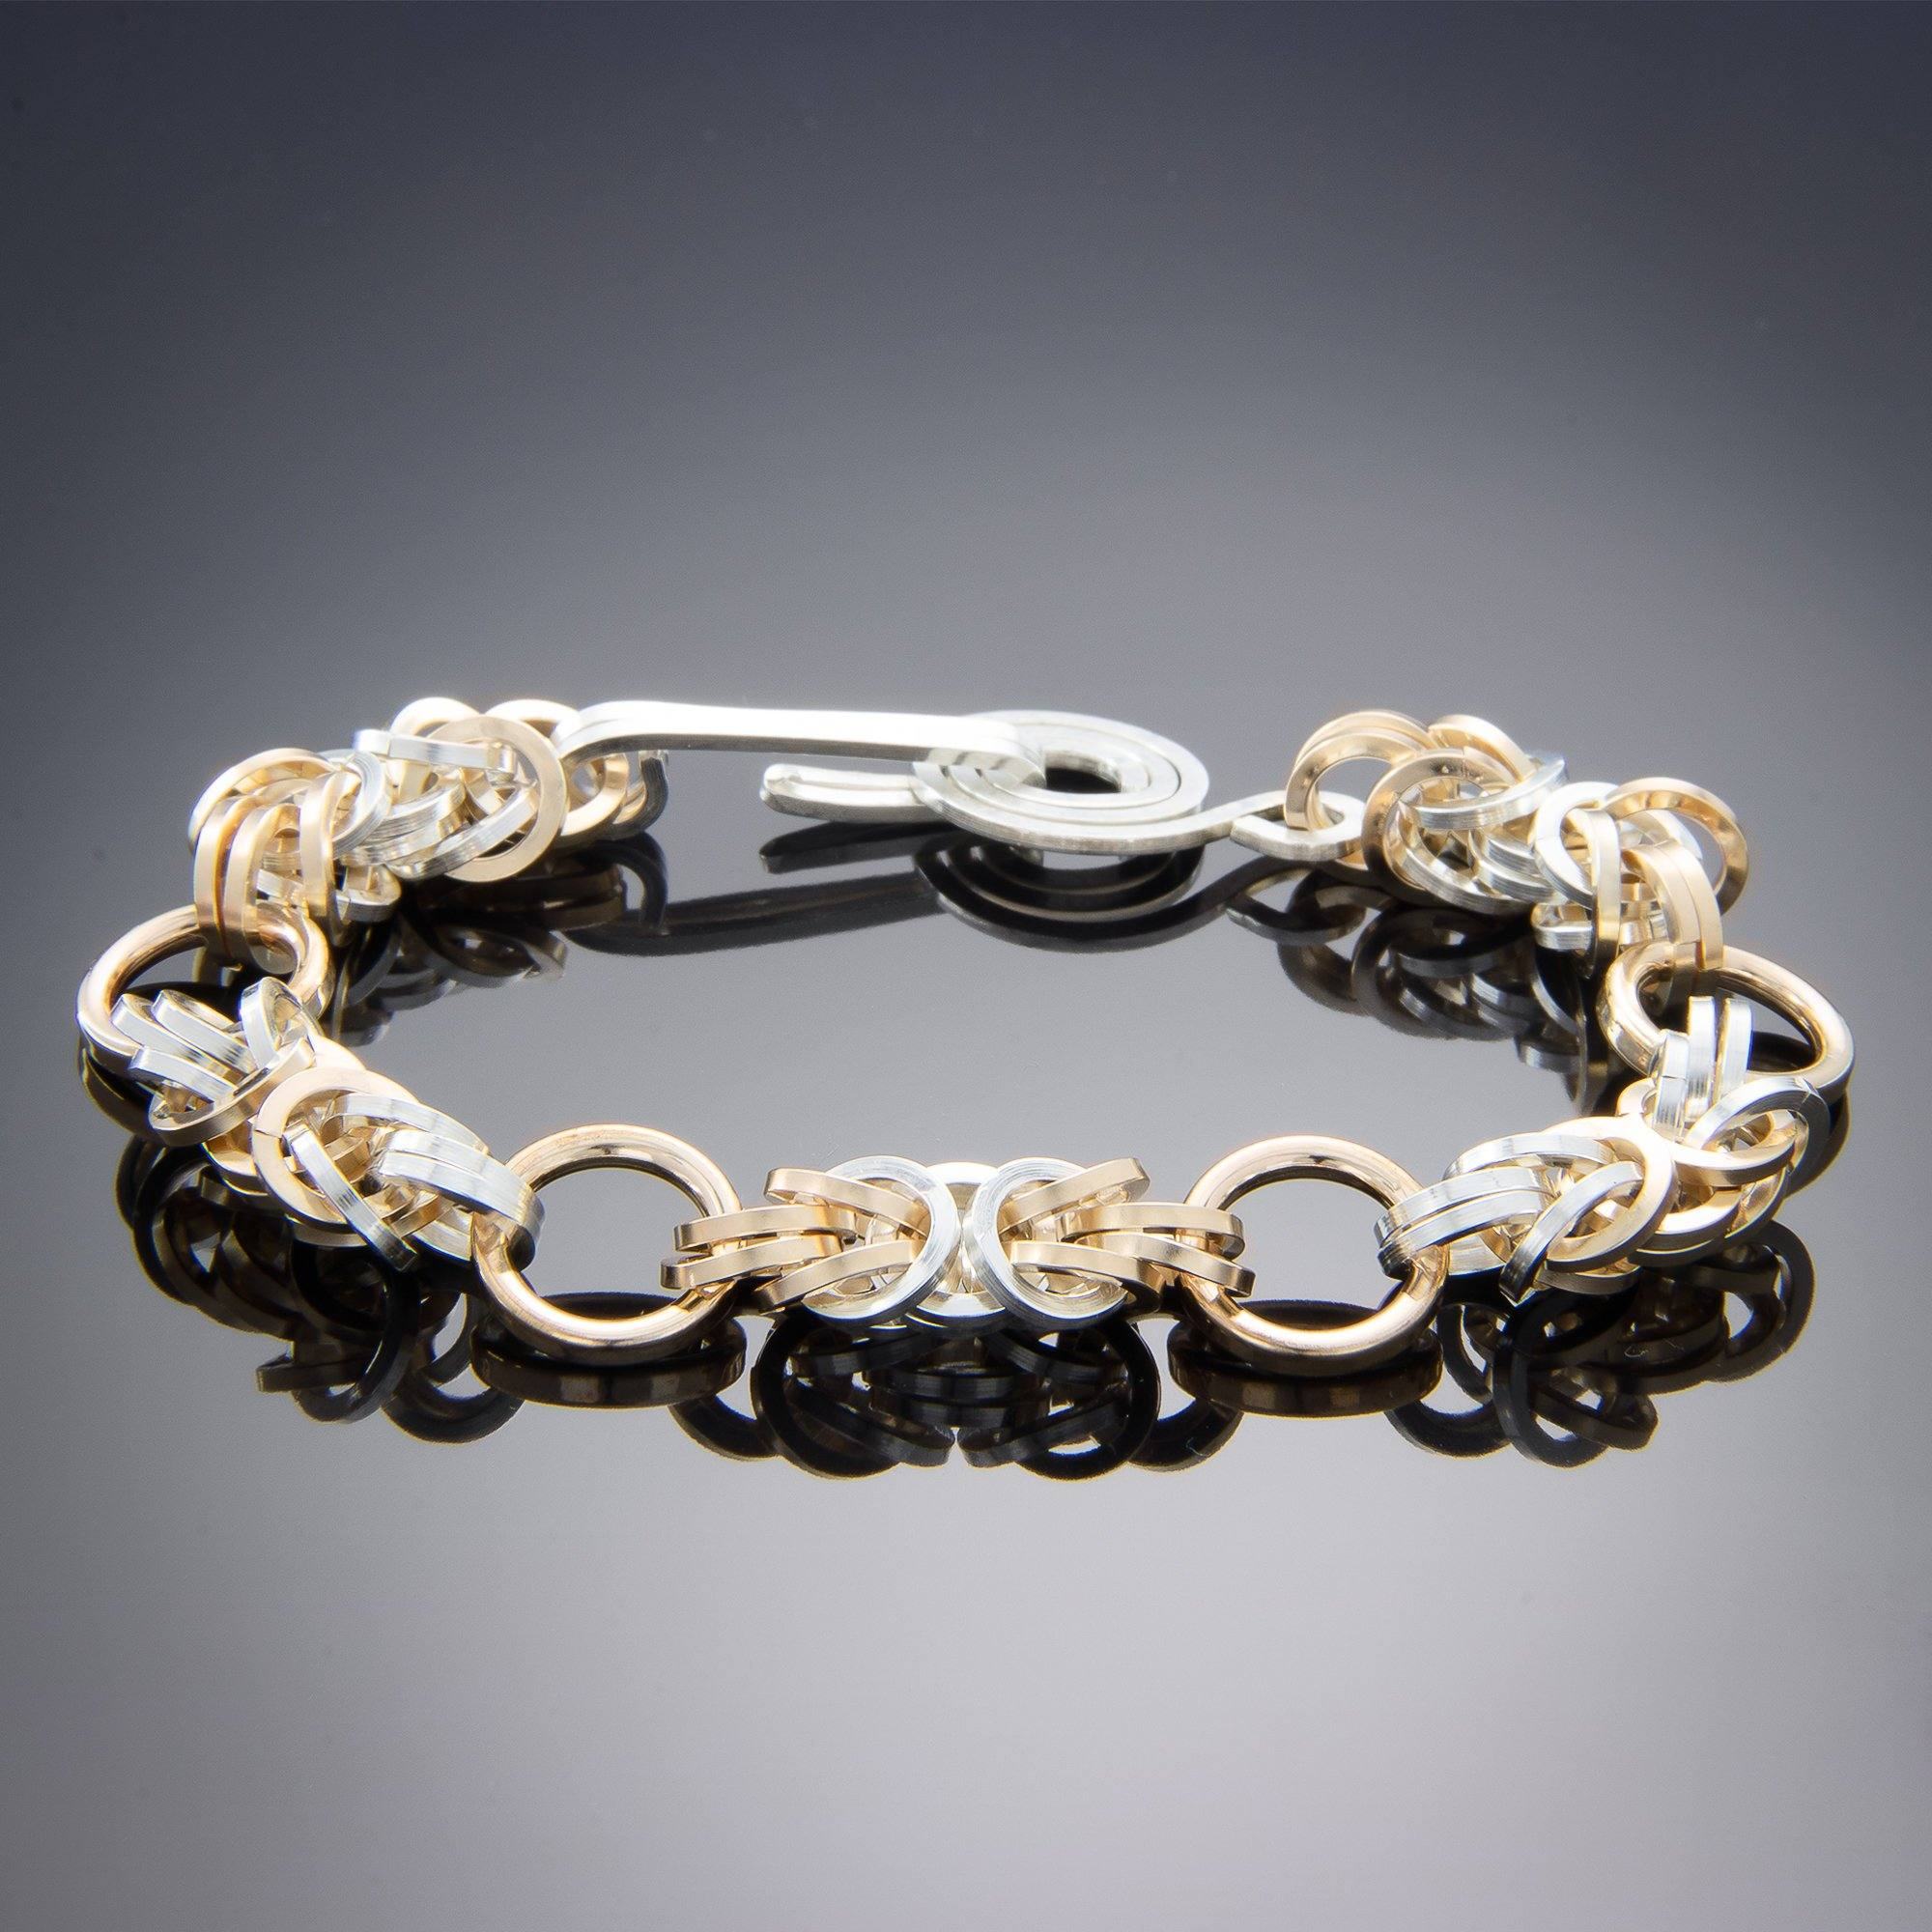 Tahmi - the art of woven metal: Divided Byzantine Chain Handmade Bracelet